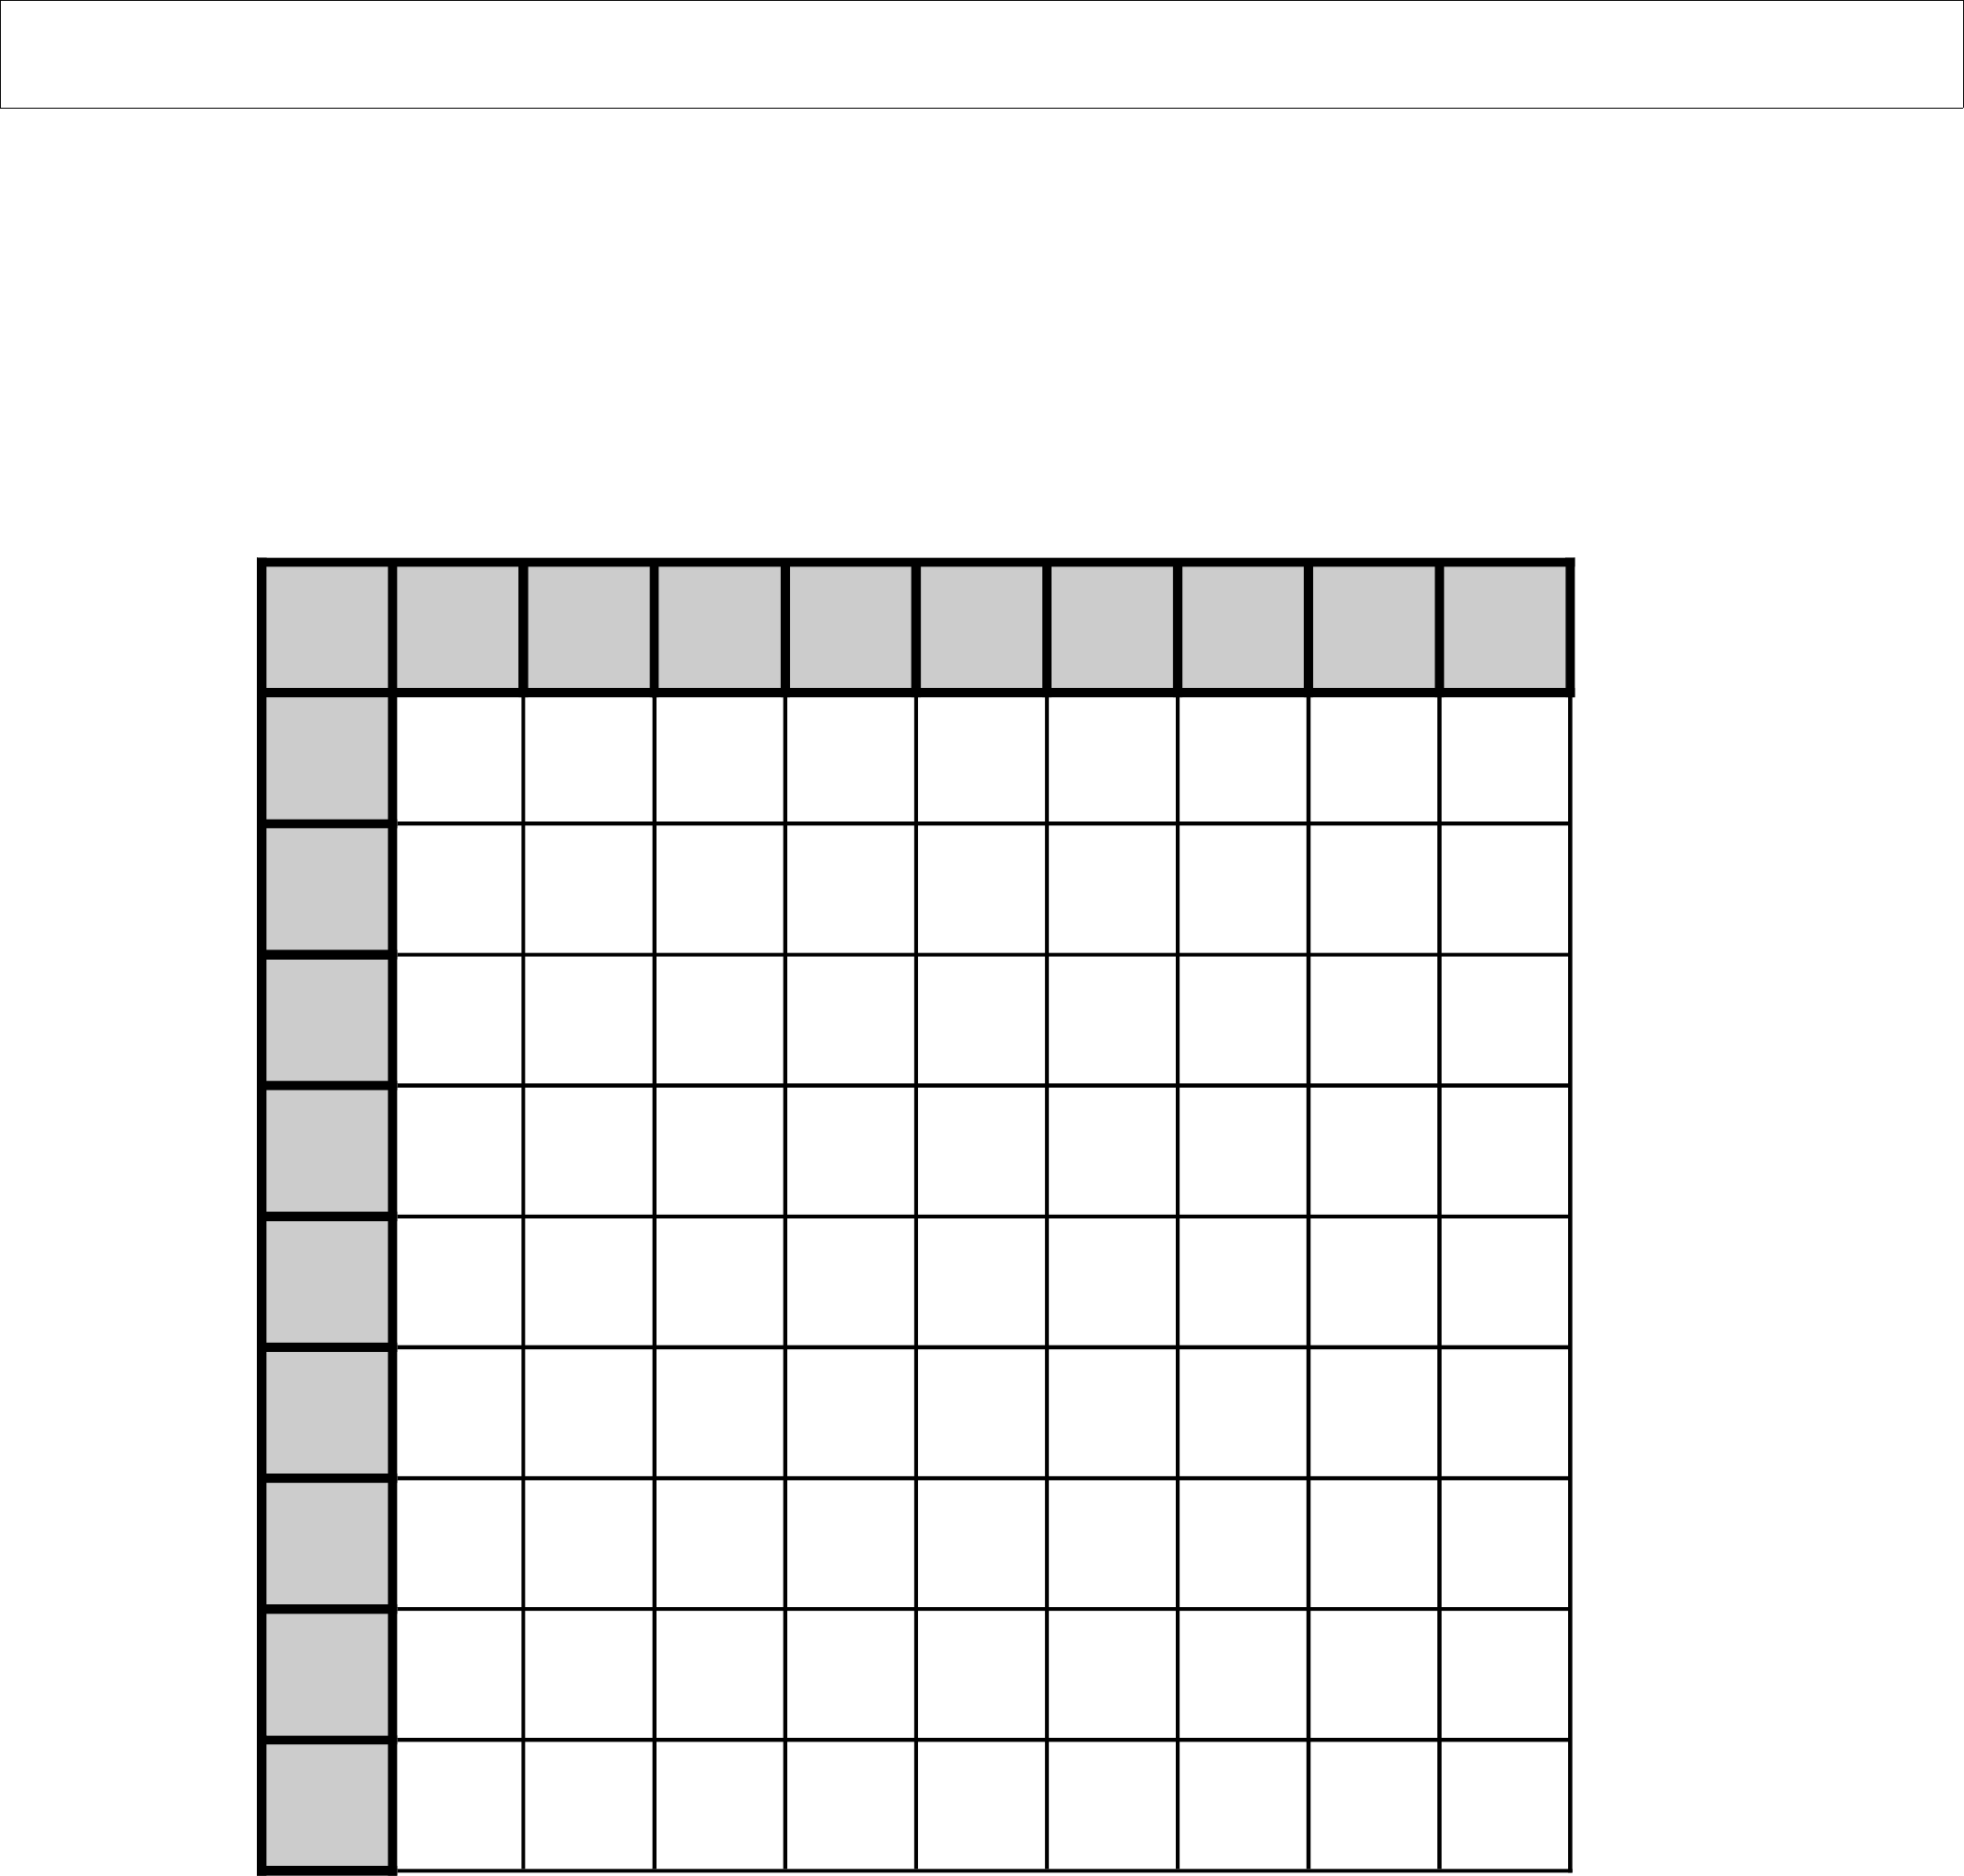 Times tables worksheets blank brokeasshome blank times table square printable gallery design ideas gamestrikefo Choice Image